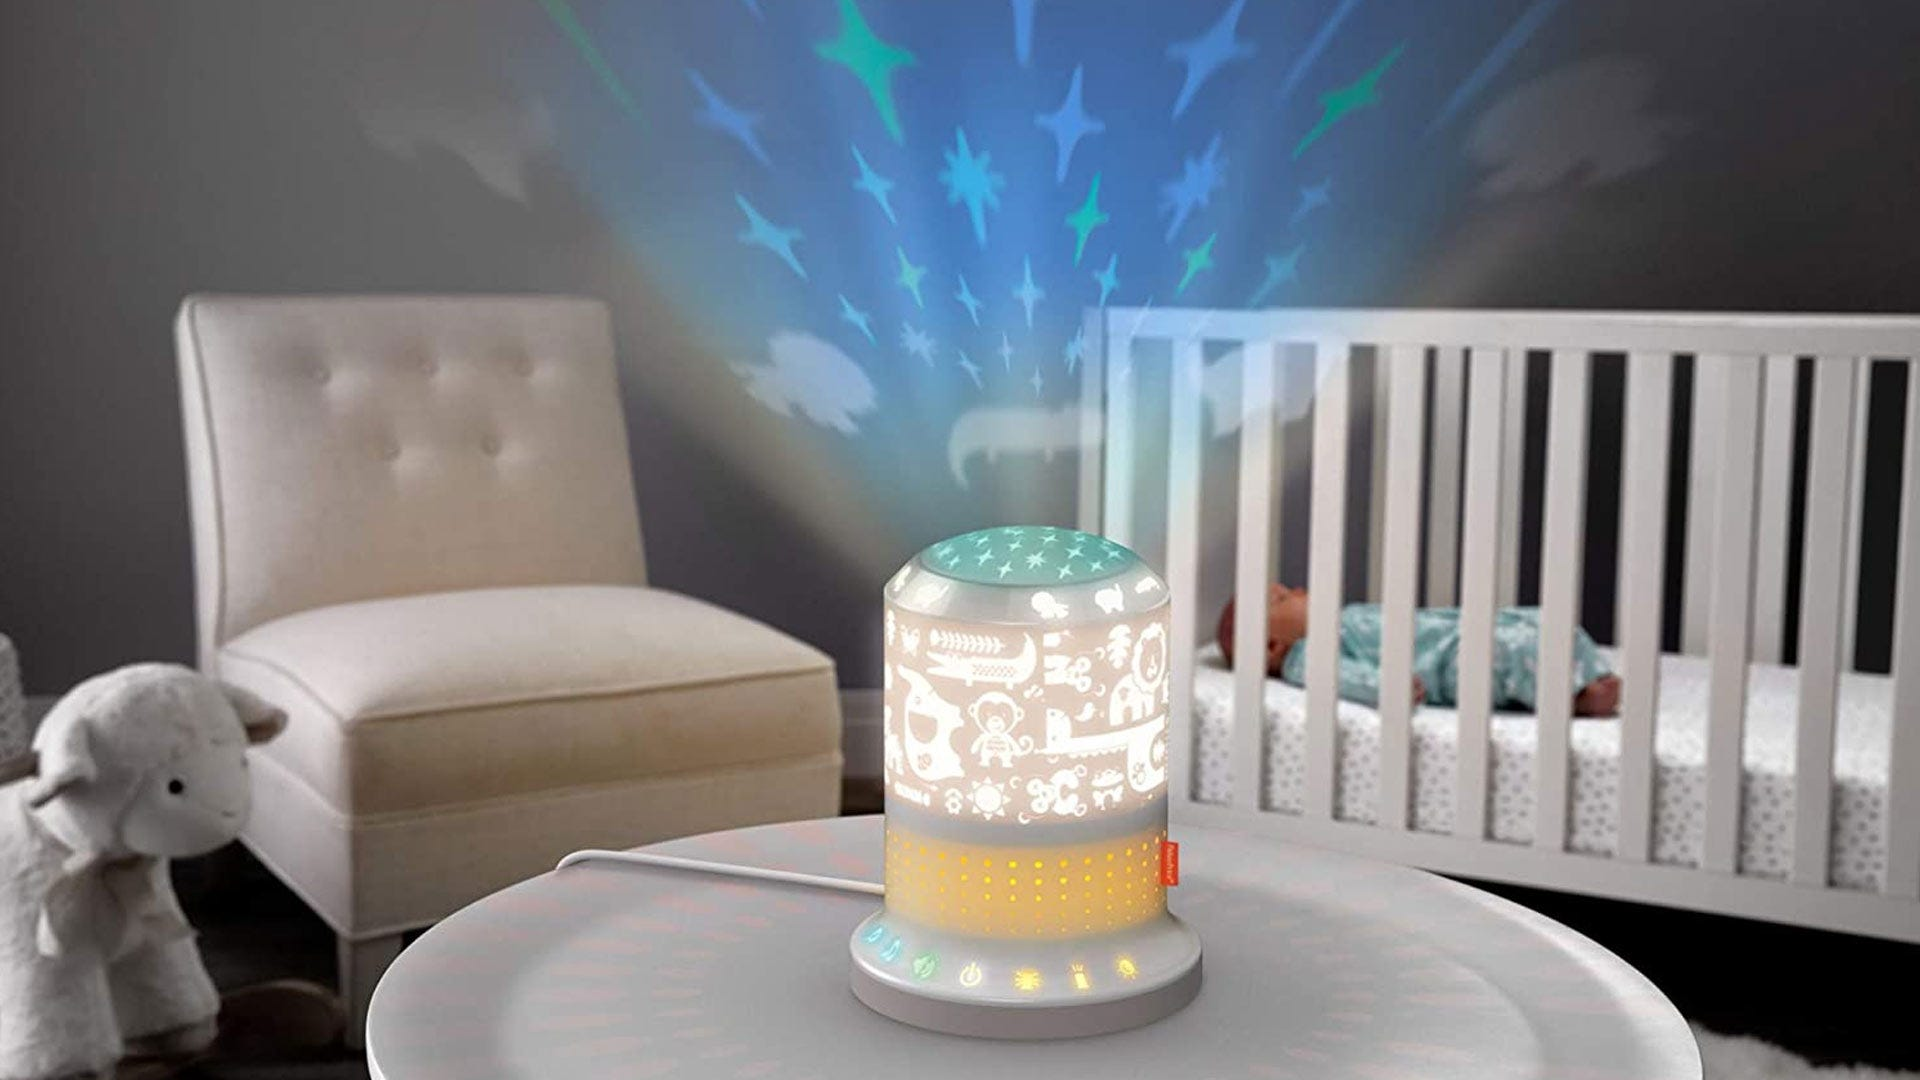 """A Fisher-Price """"smart soother"""" nightlight that creates a pattern on the ceiling."""